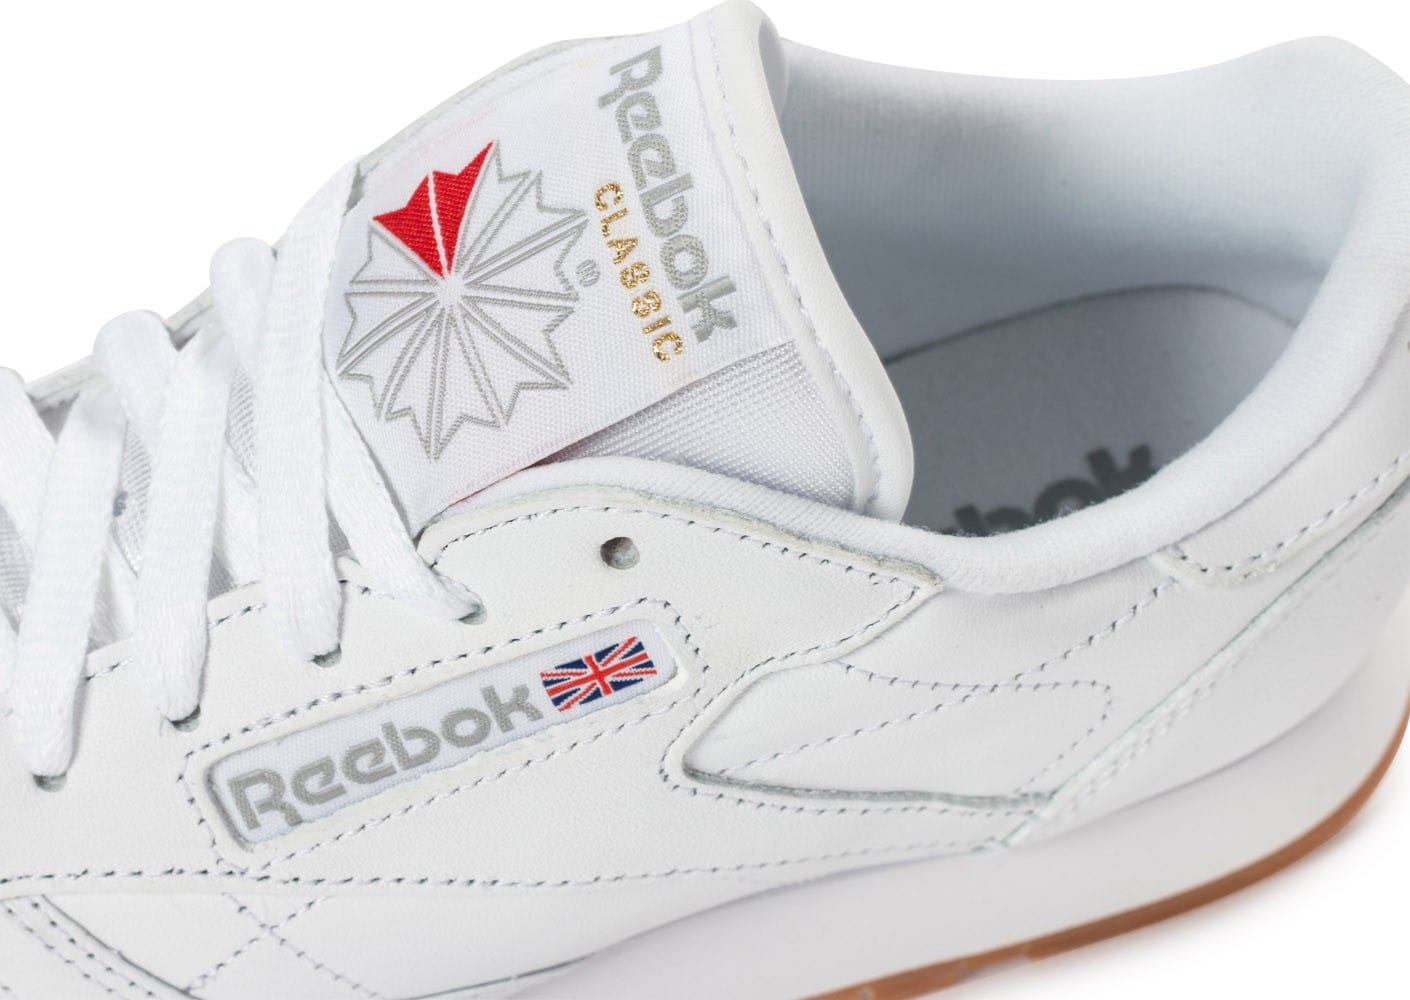 1ff97e7106cc3 Reebok Classic Leather W Gum blanche - Chaussures Baskets femme ...